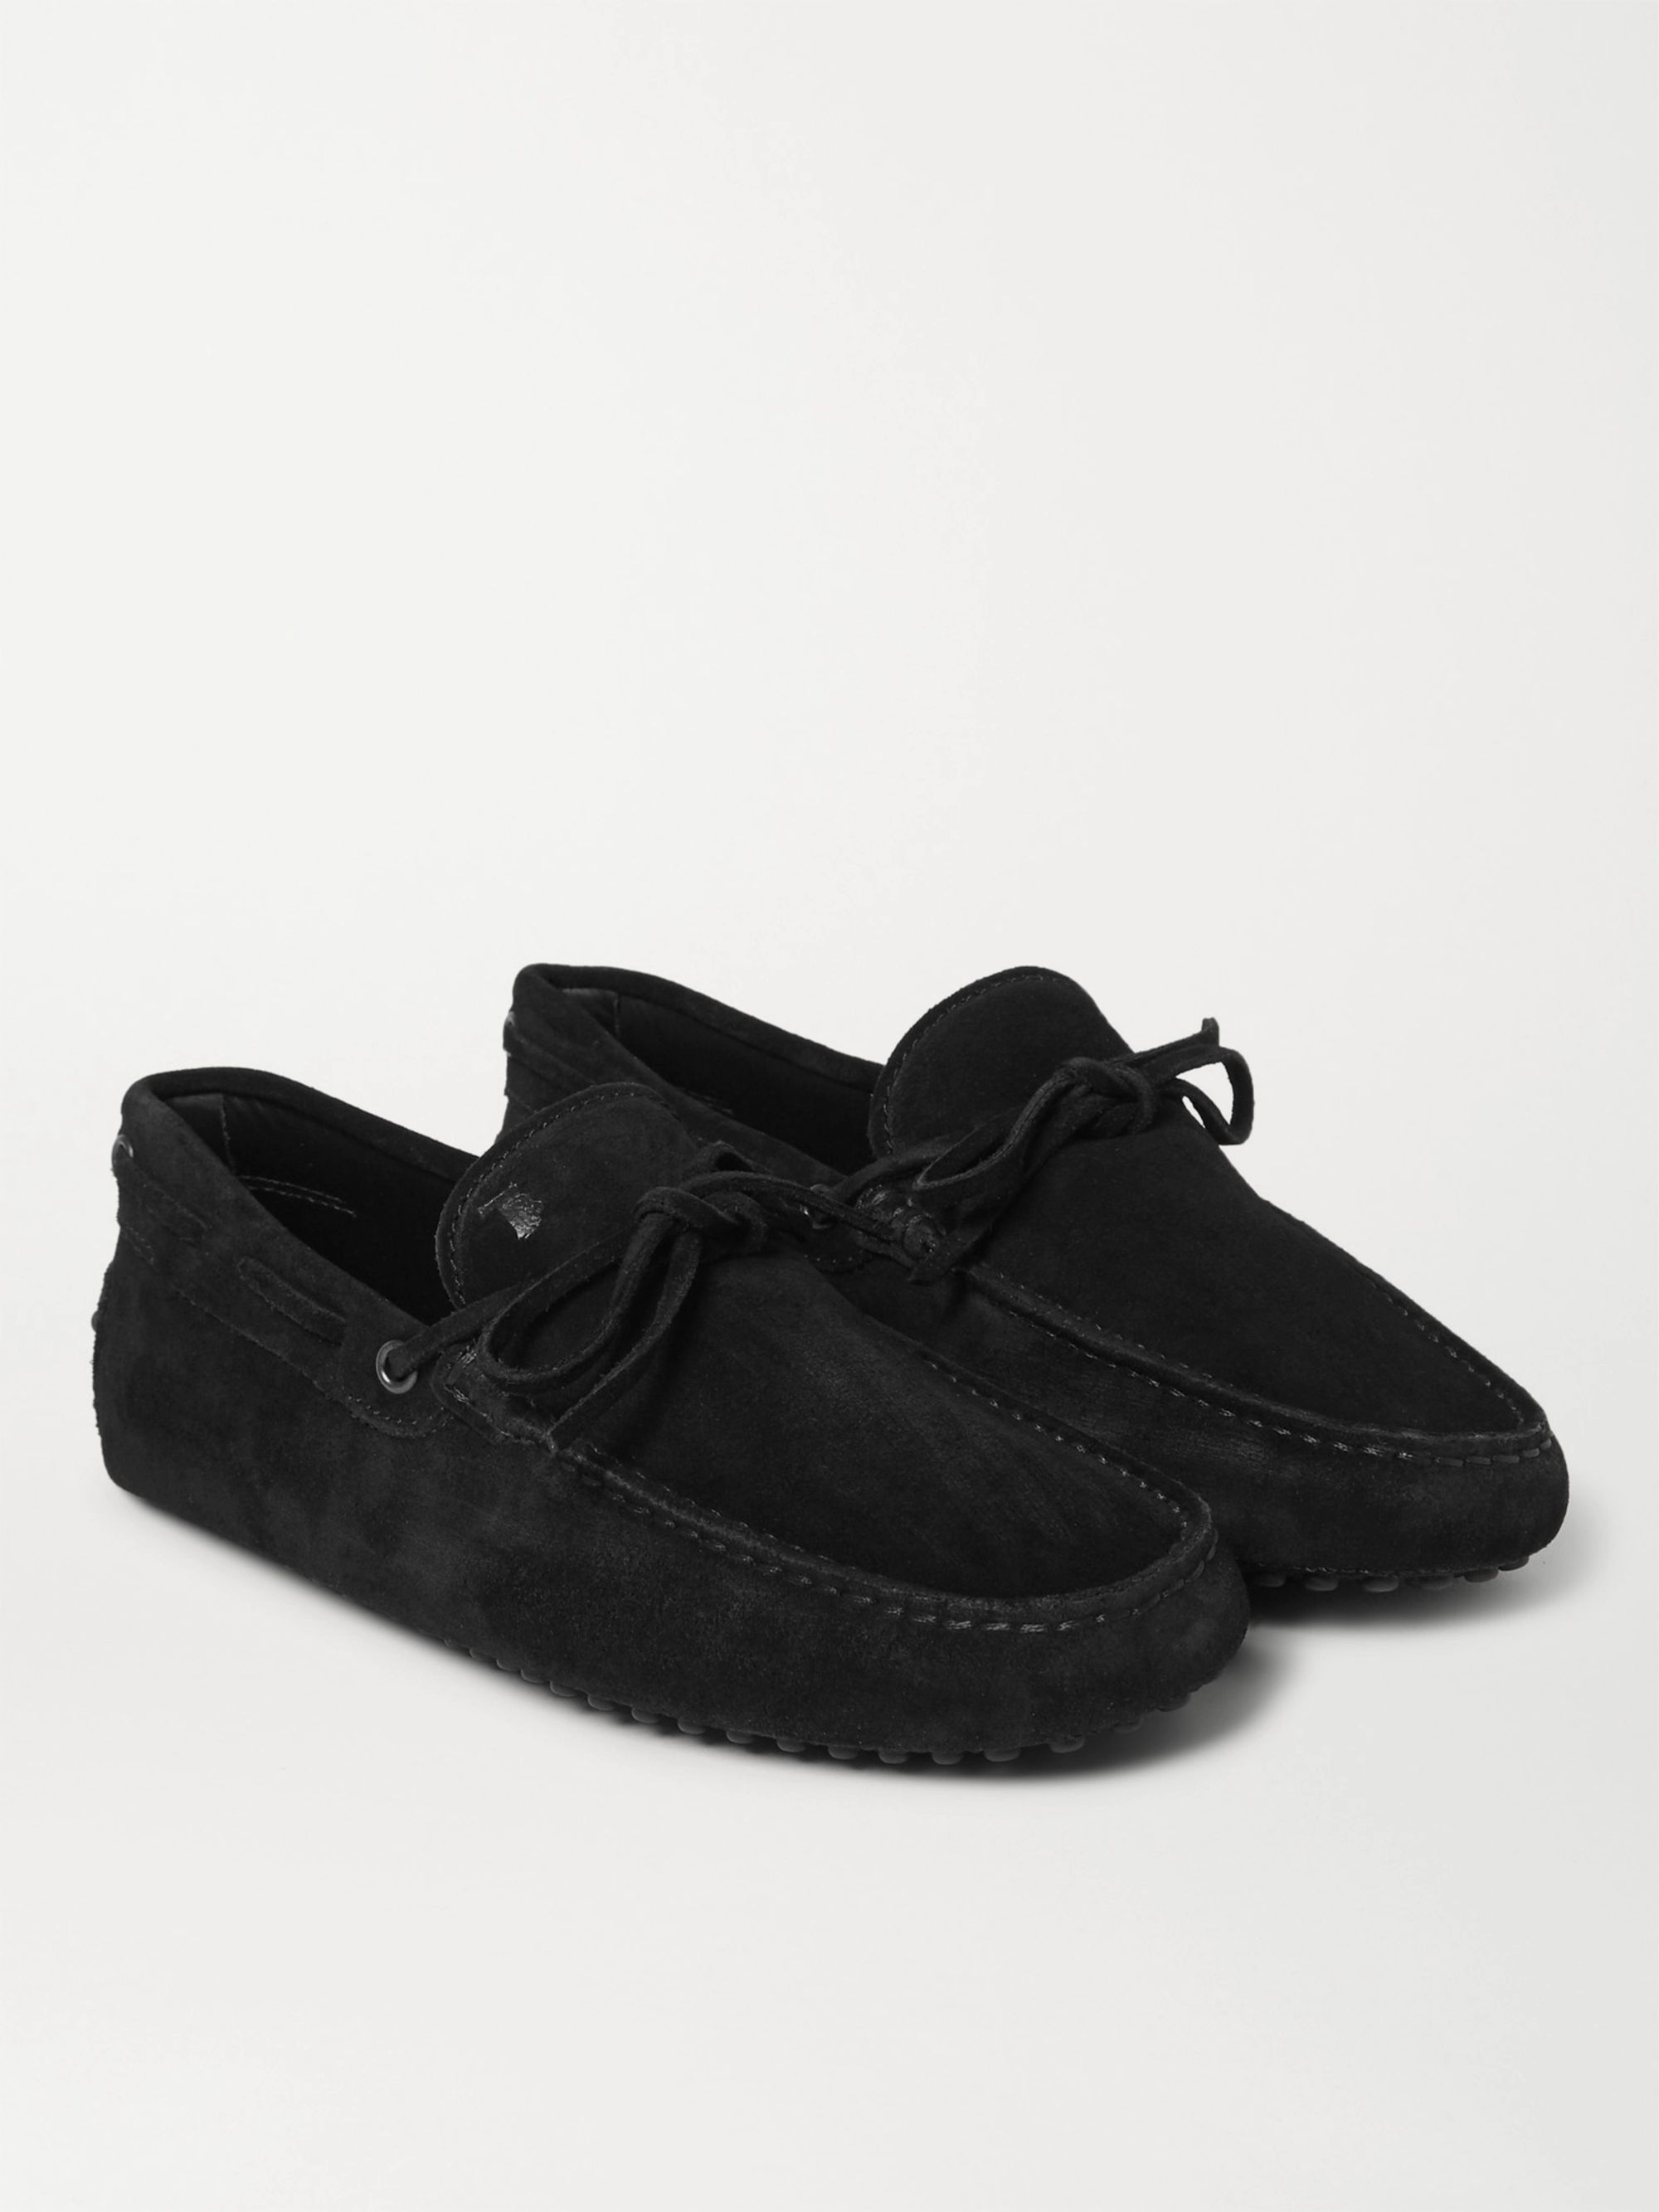 Black Gommino Suede Driving Shoes   Tod